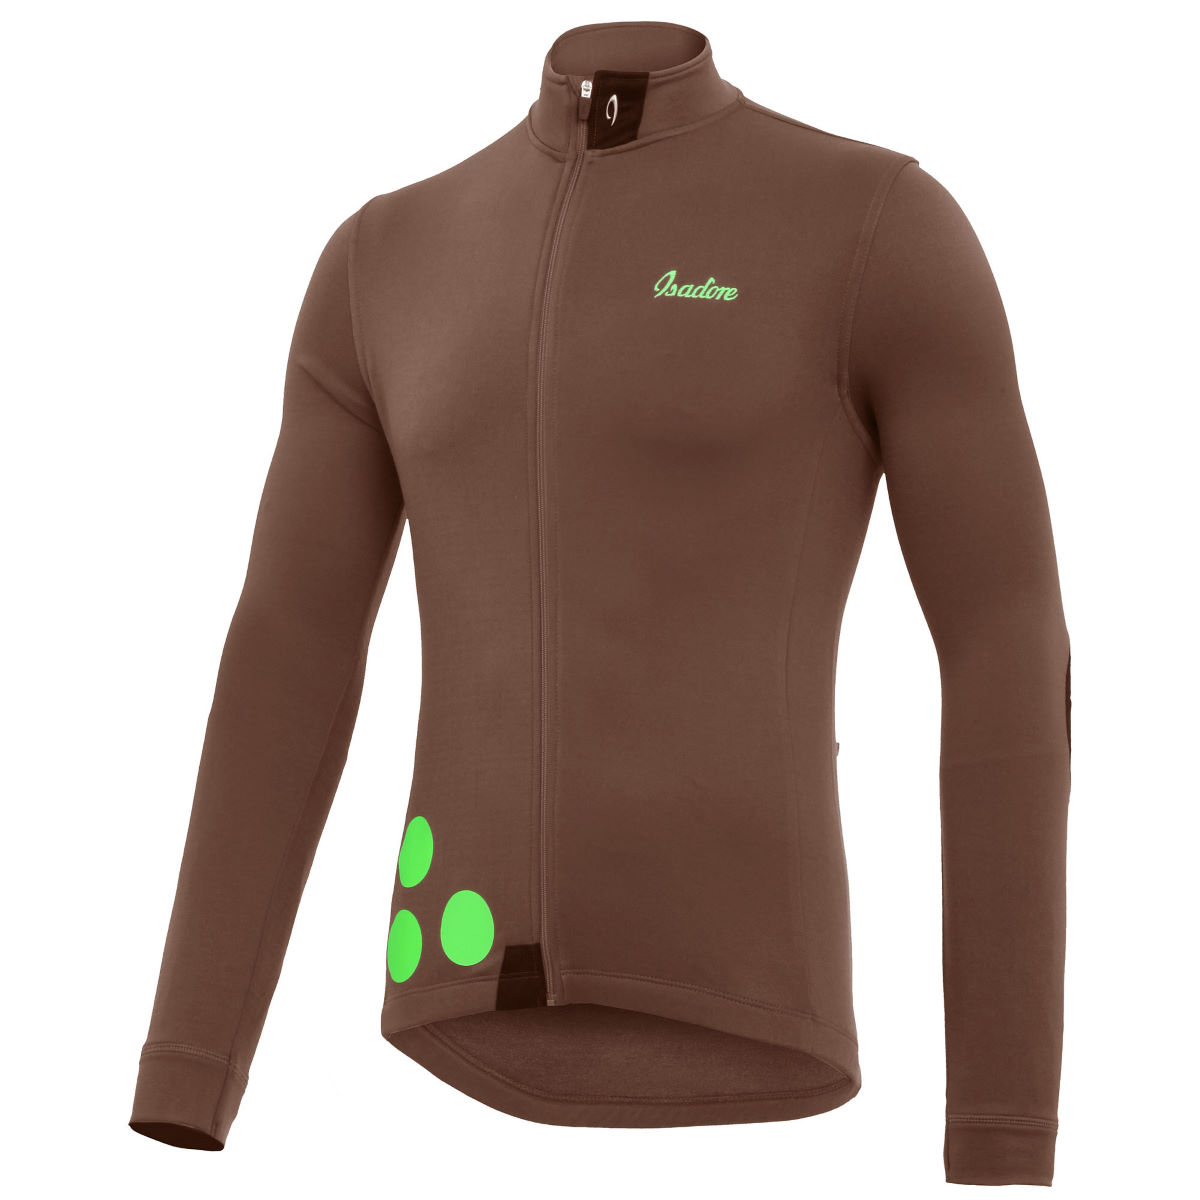 Maillot Isadore Thermerino (manches longues) - L Cocoa Brown